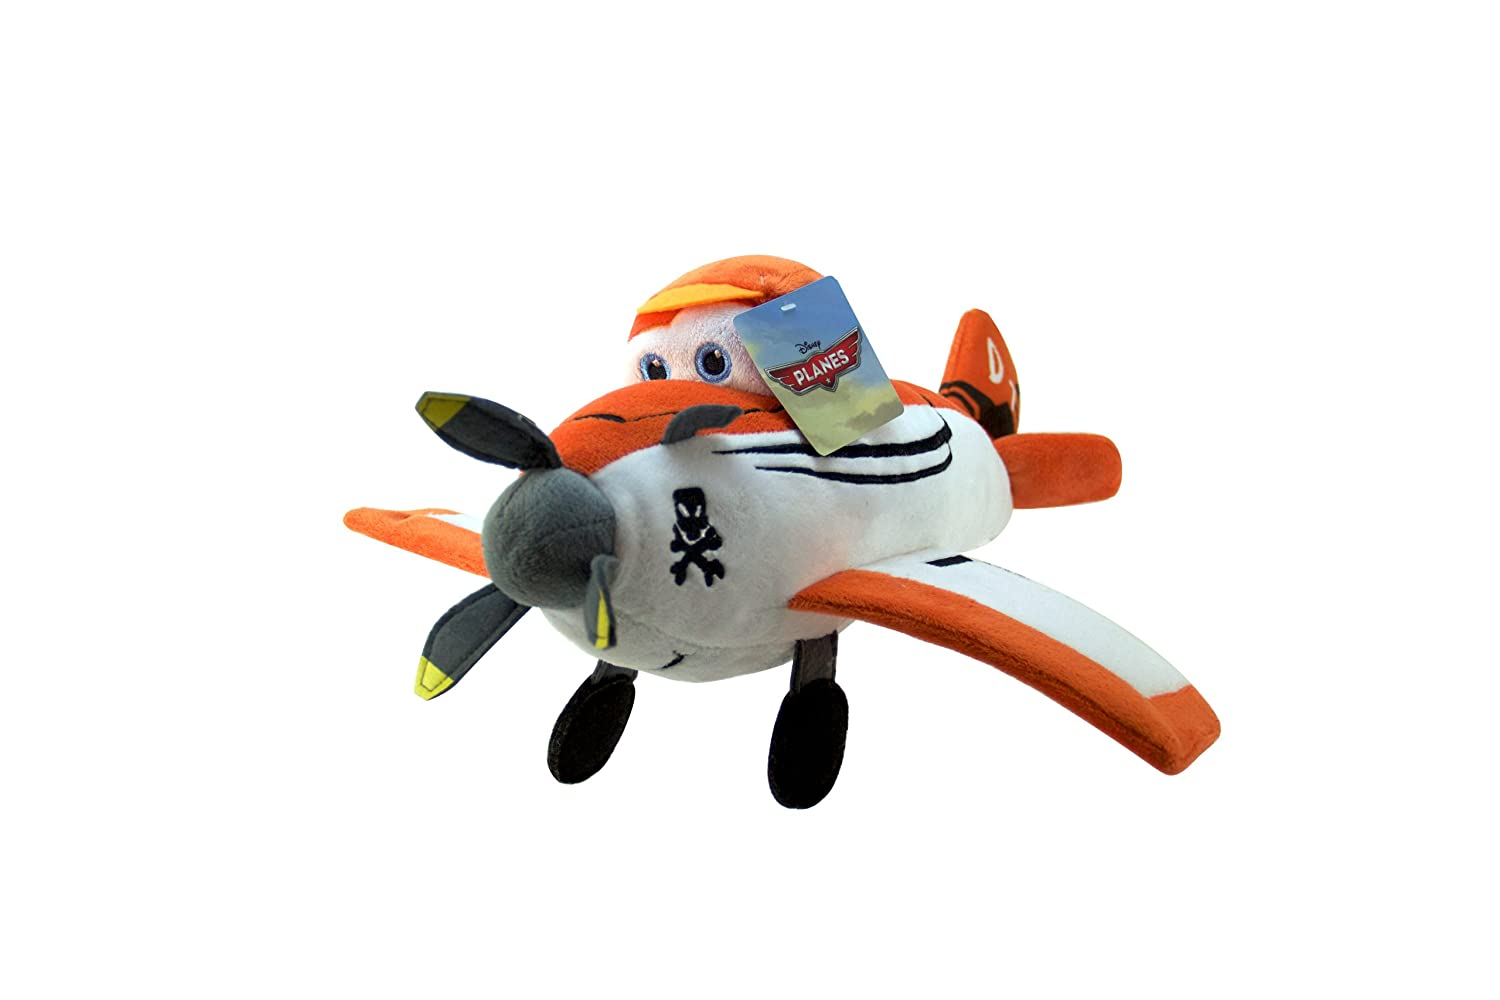 Disney Planes Dusty Pillowtime Pal